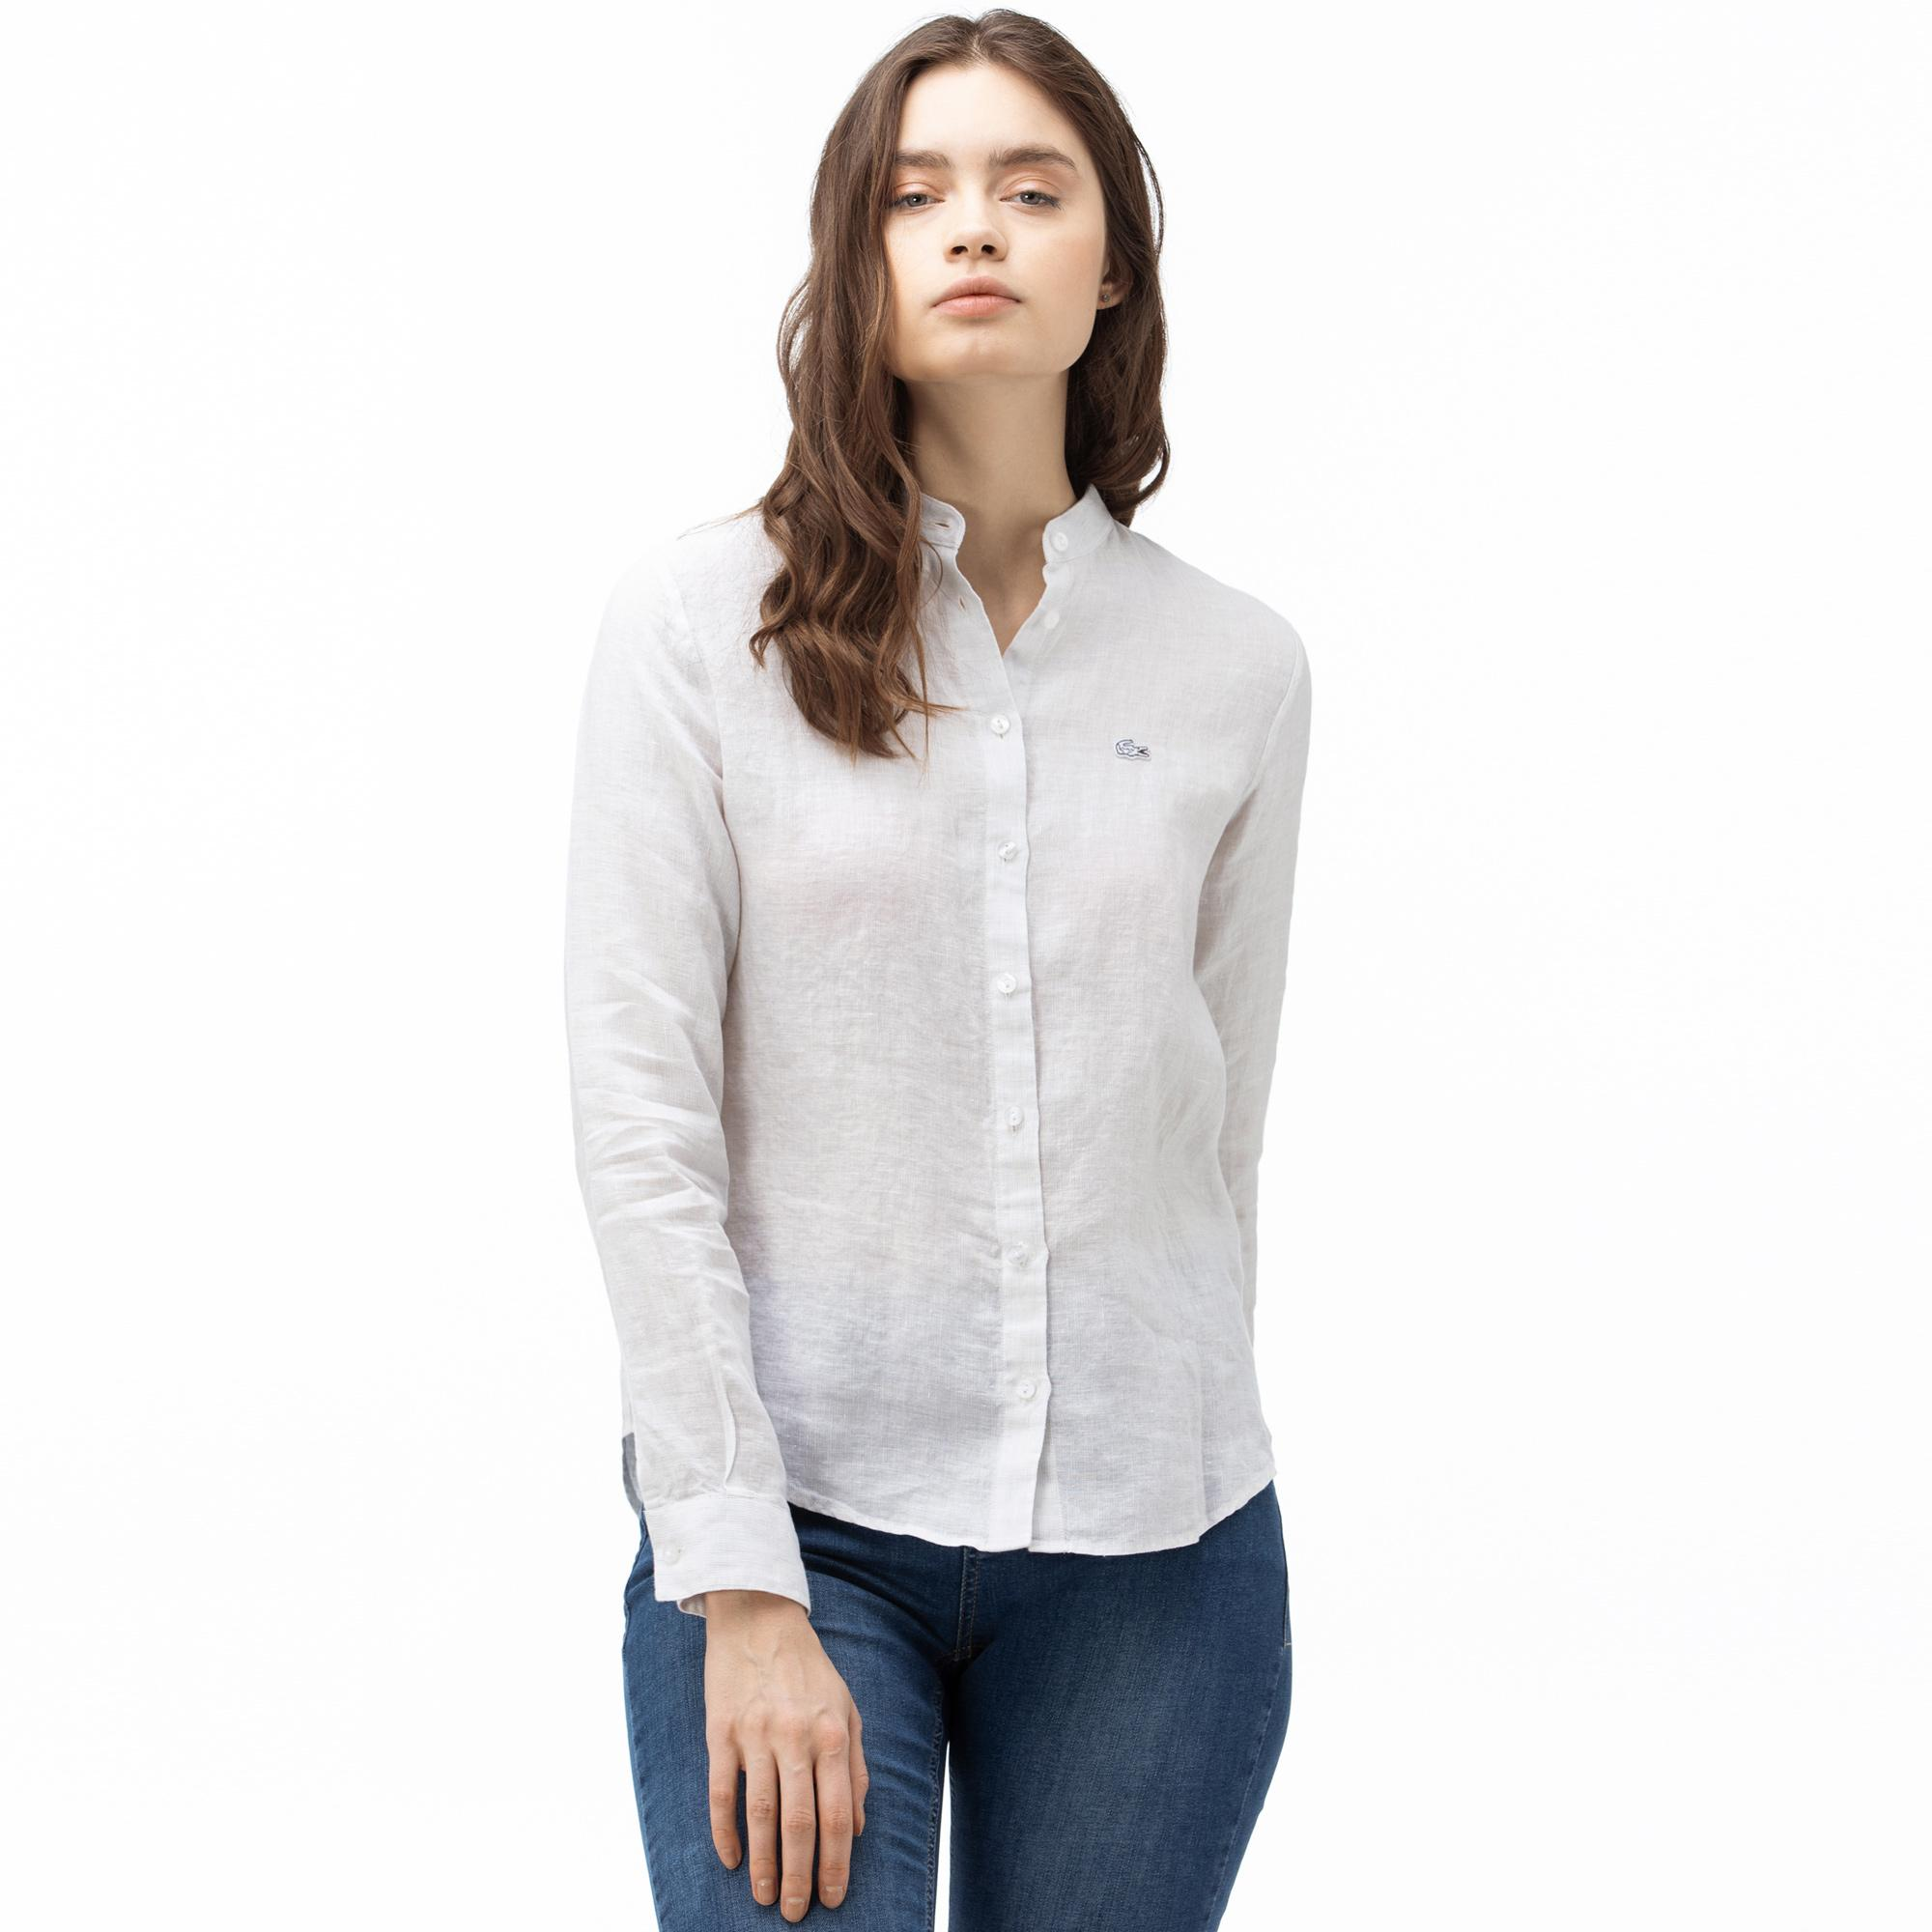 Lacoste Women's Stand-Up Collar Linen Shirt